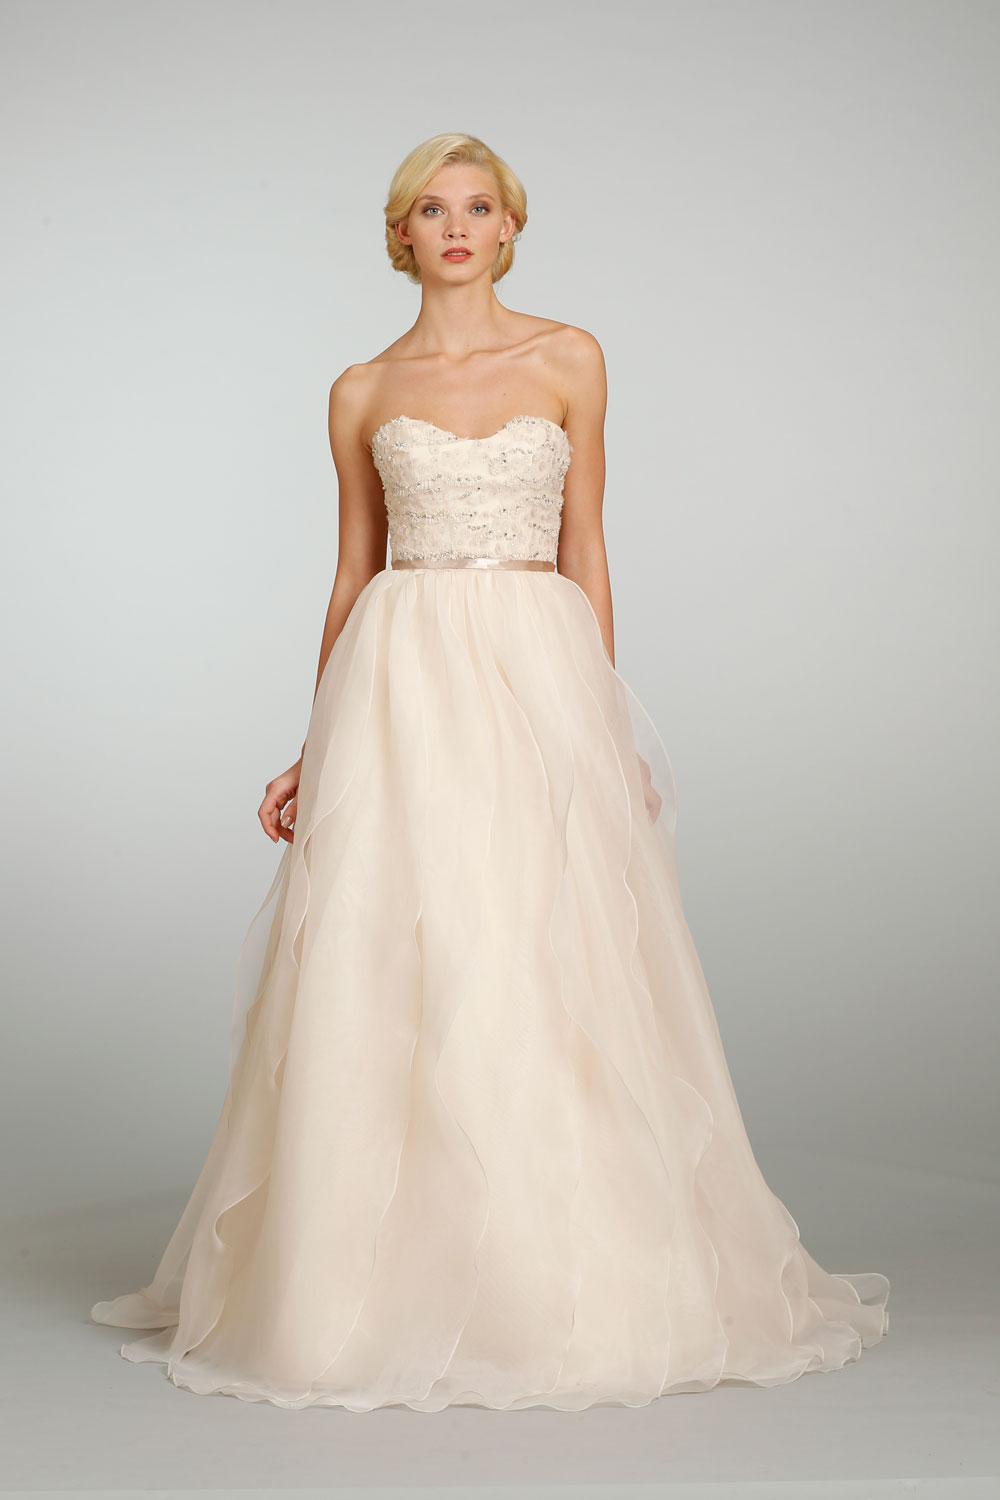 Image Result For Bridesmaid Jewelry Sweetheart Neckline